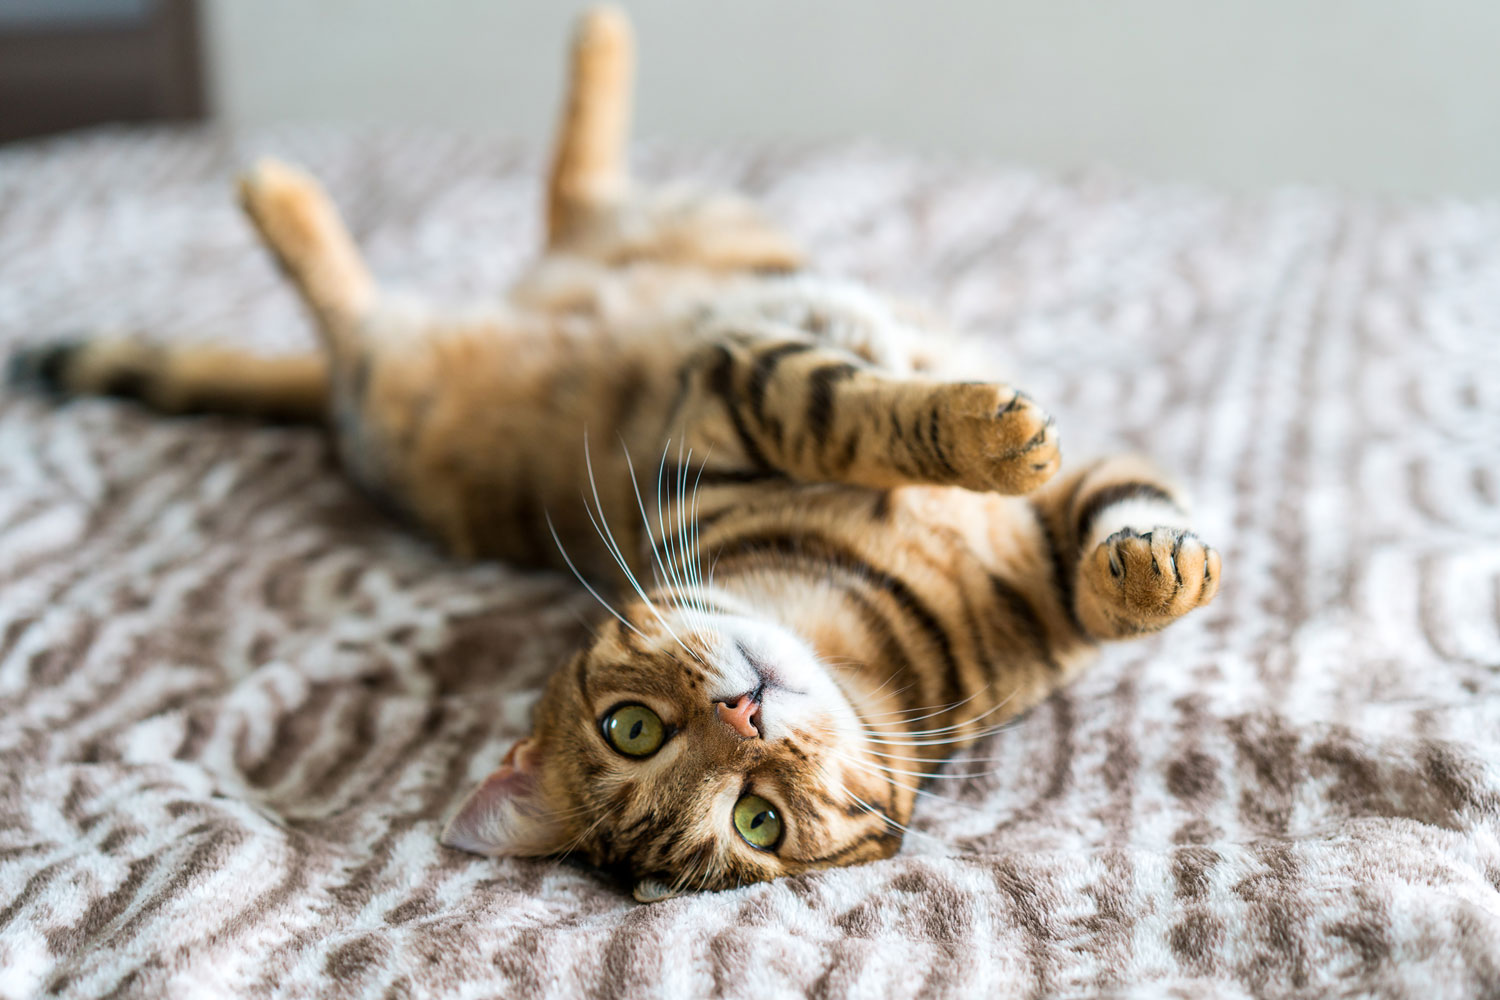 A cute Bengal cat lying upside down on the bed, How Many Whiskers Does A Cat Have? And Why?